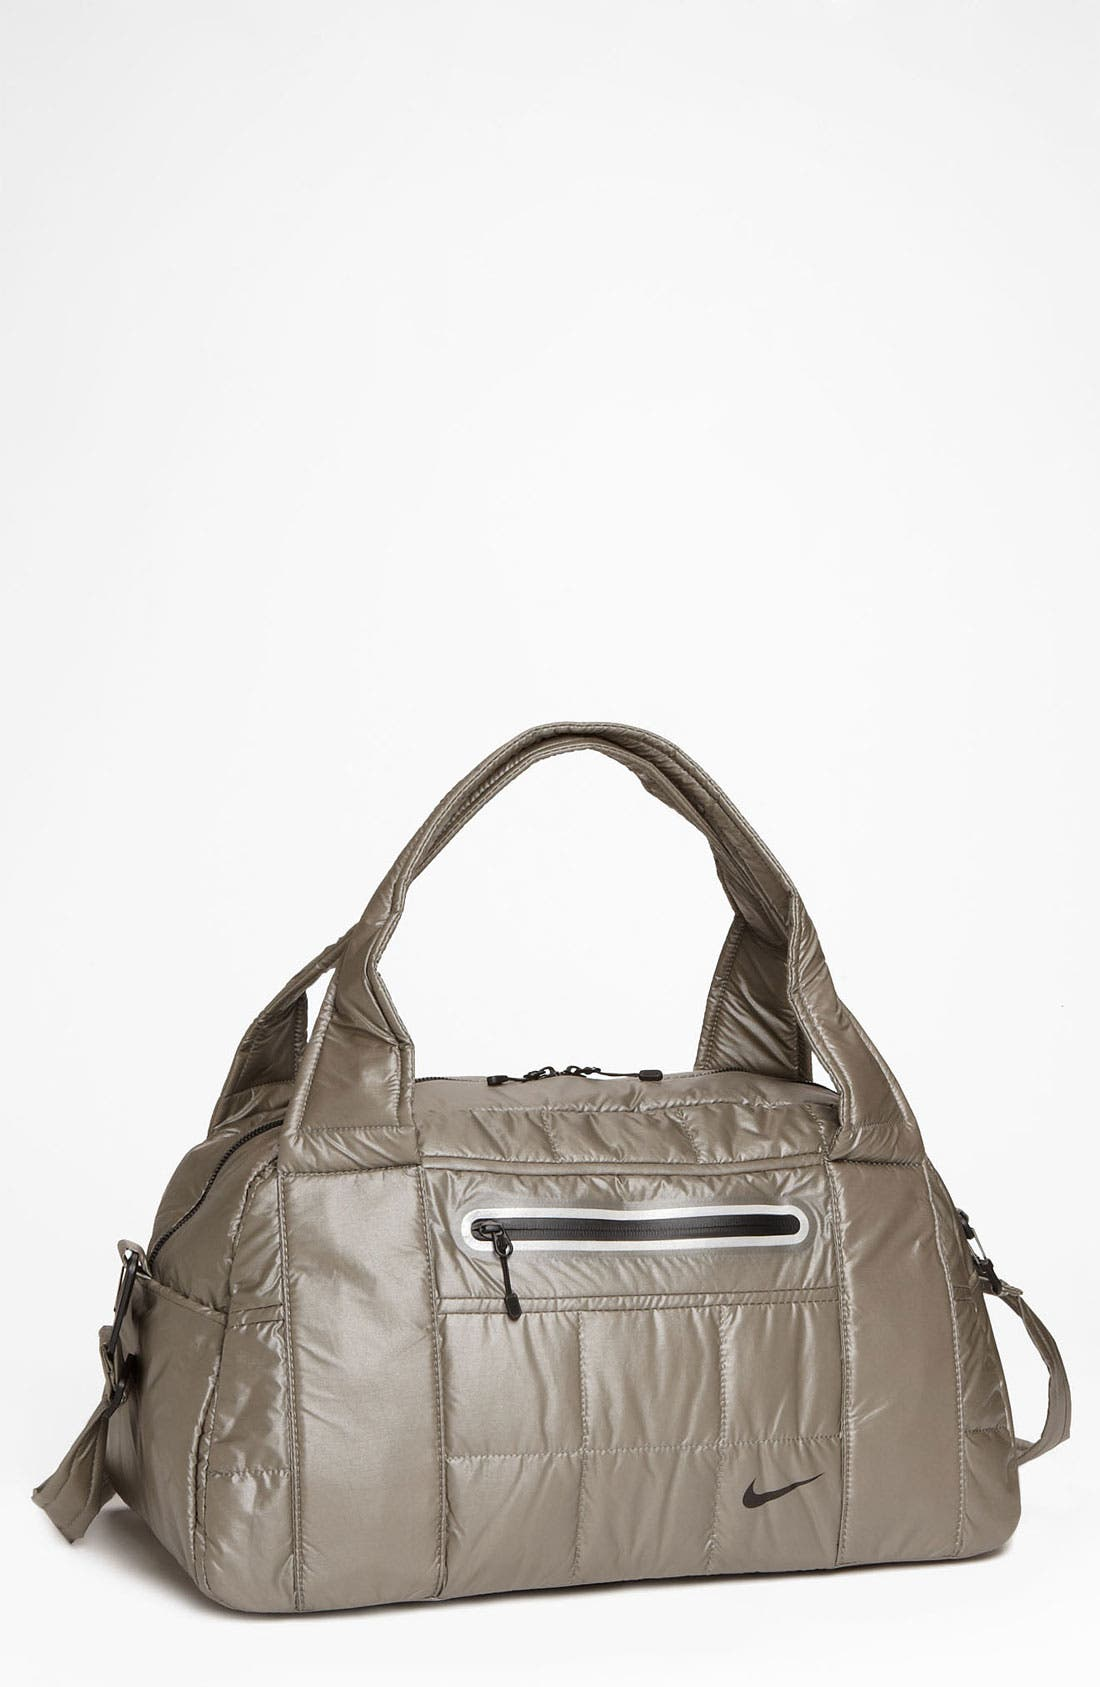 Alternate Image 1 Selected - Nike 'C72 Uptown Victory' Club Bag